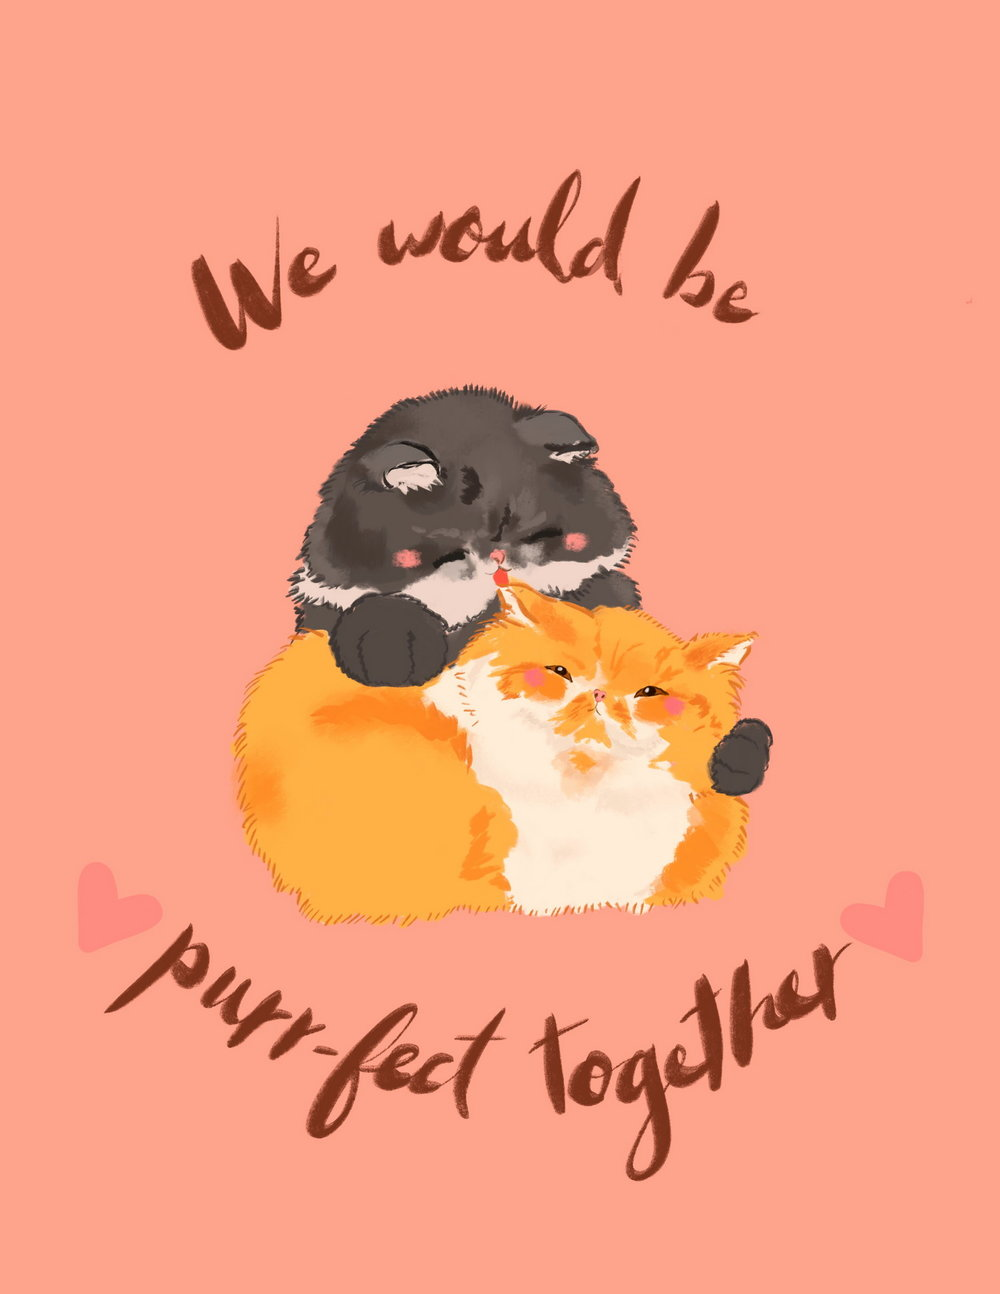 We Would Be Purr Fect Together